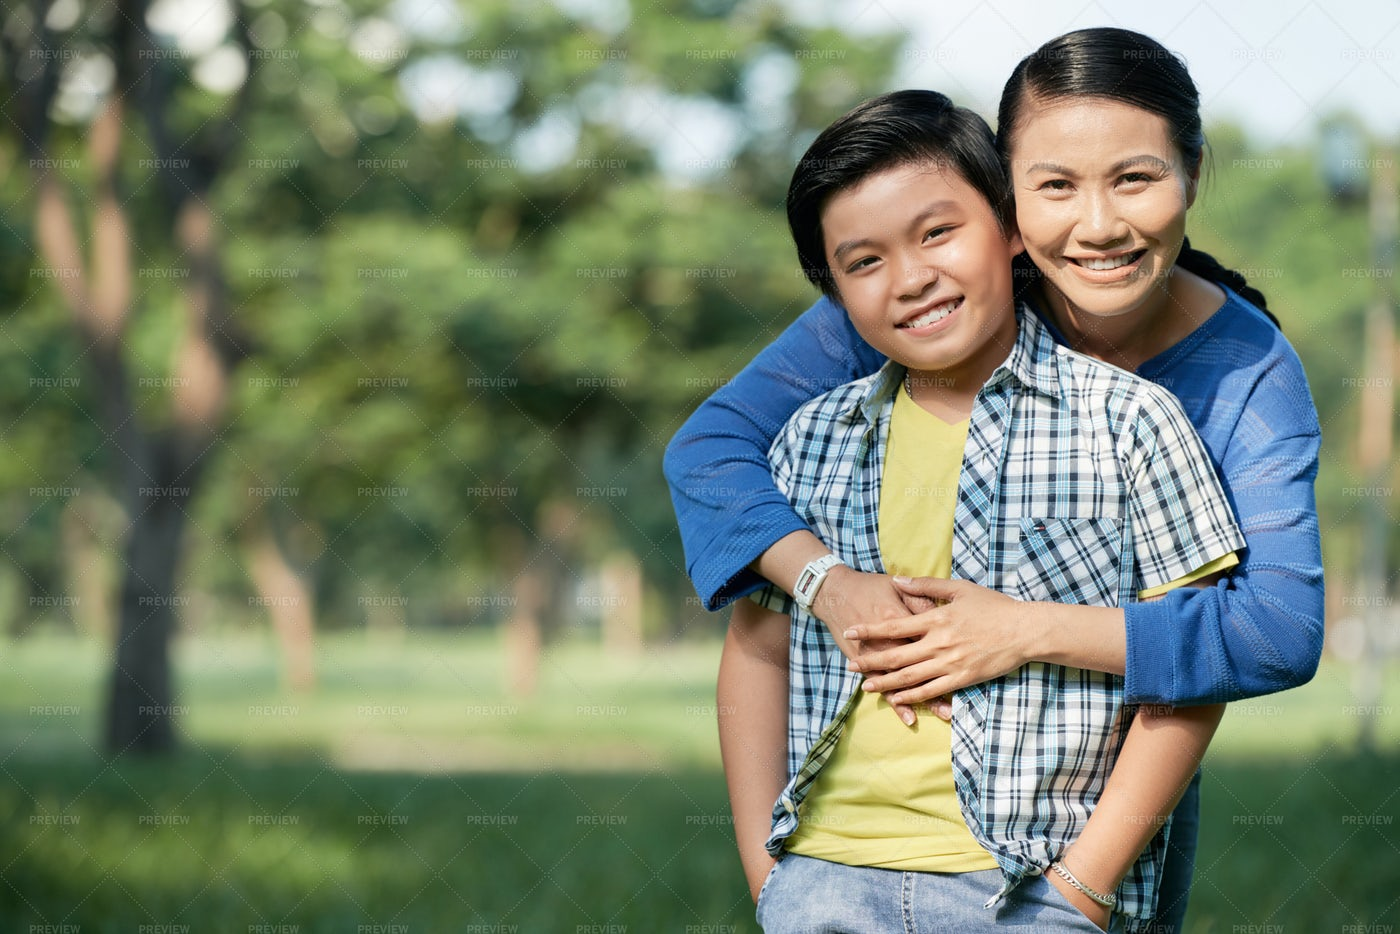 Spending Day With Mom At Public...: Stock Photos